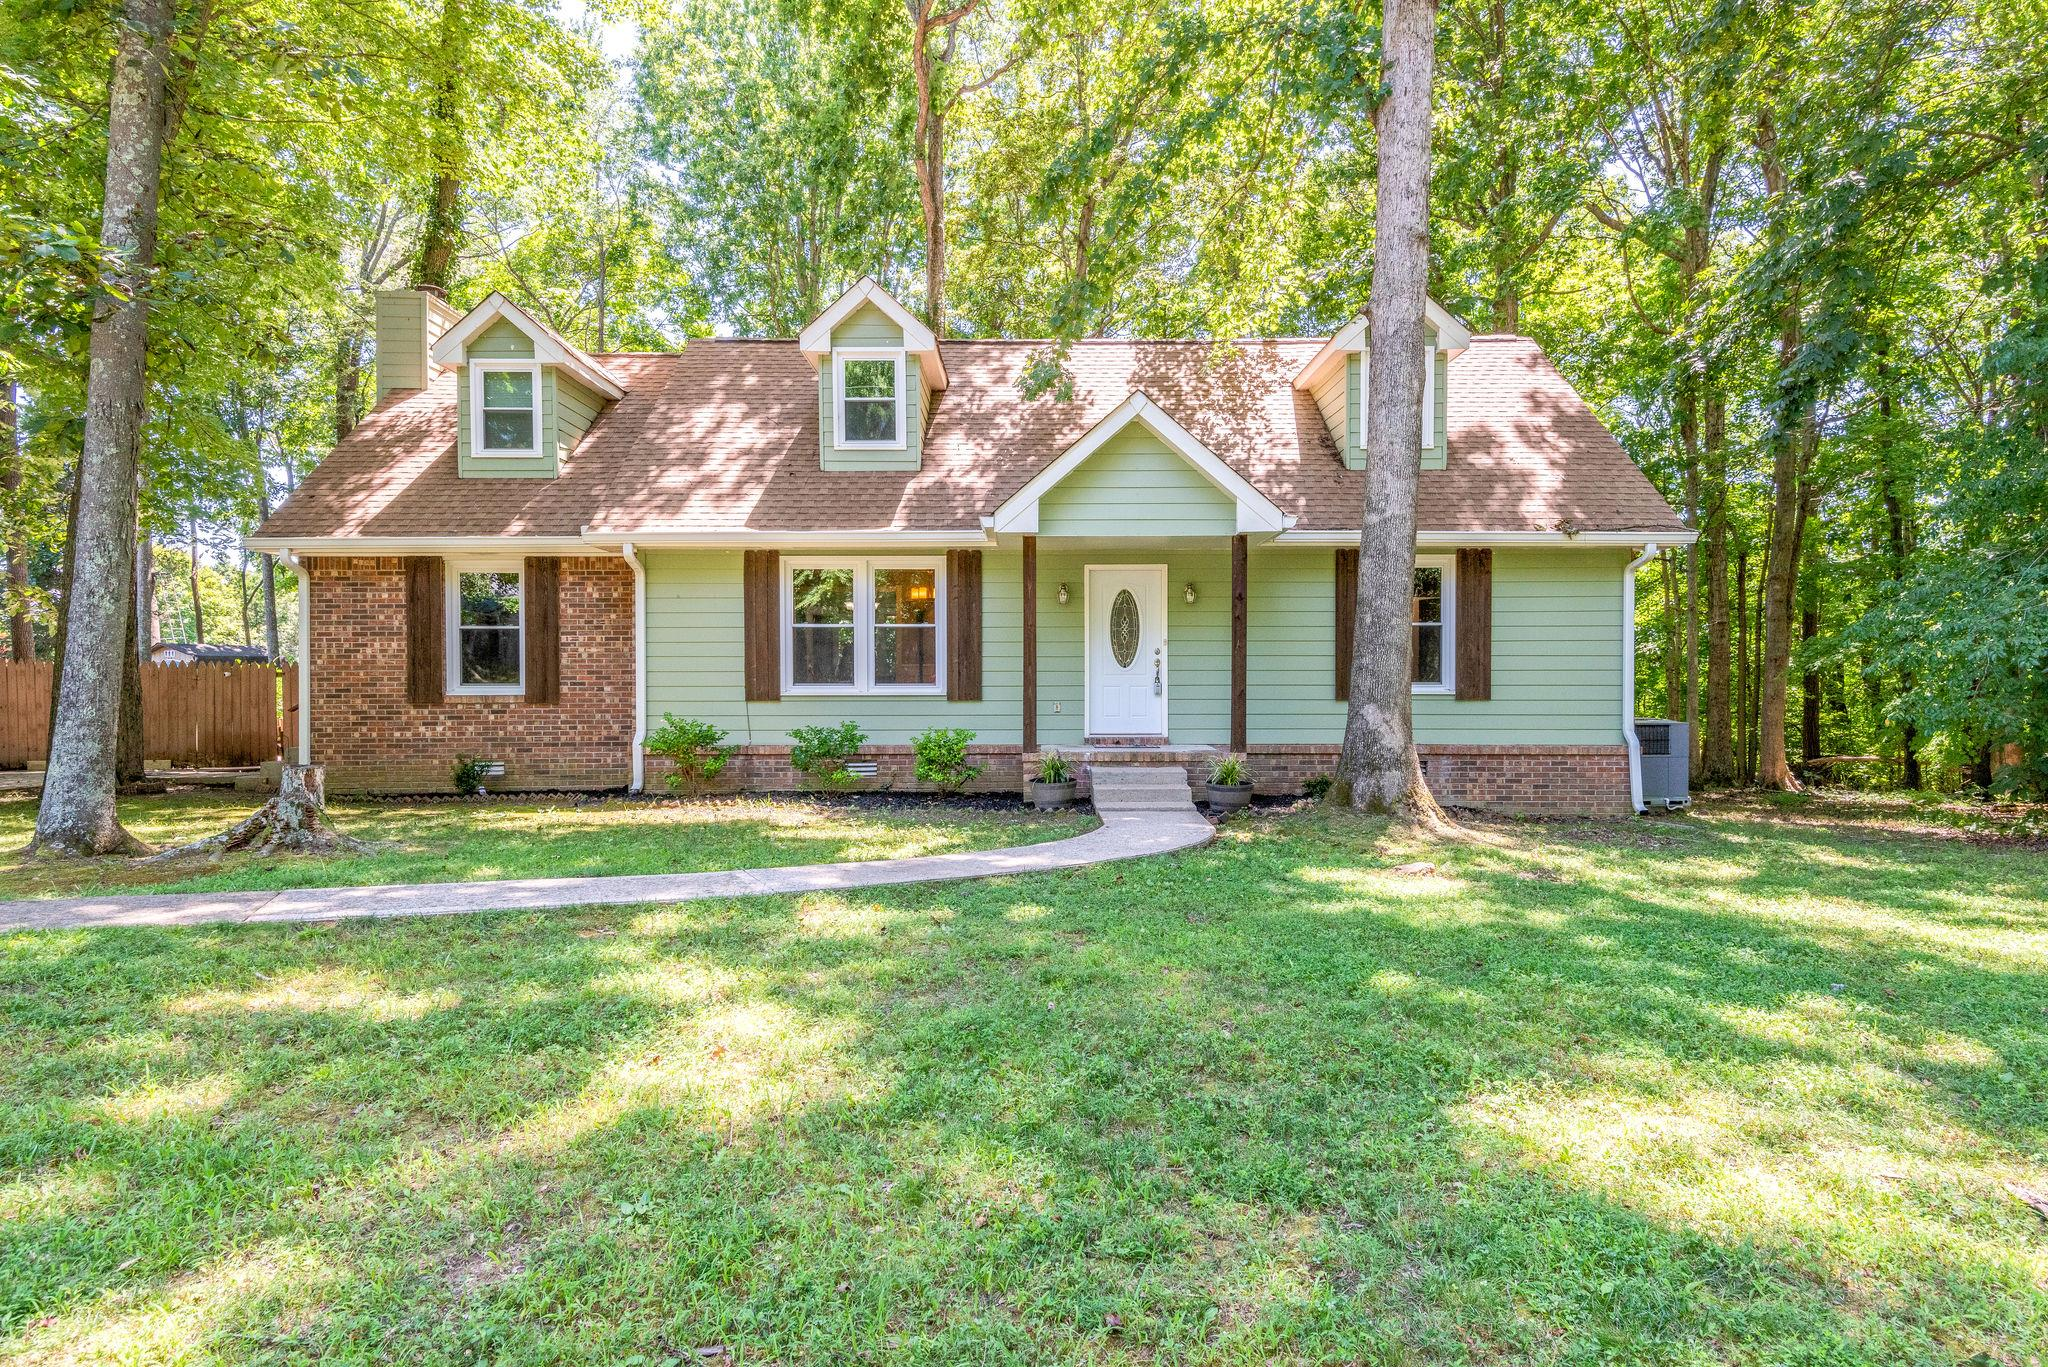 2904 Curtiswood Ln E, Springfield, TN 37172 - Springfield, TN real estate listing